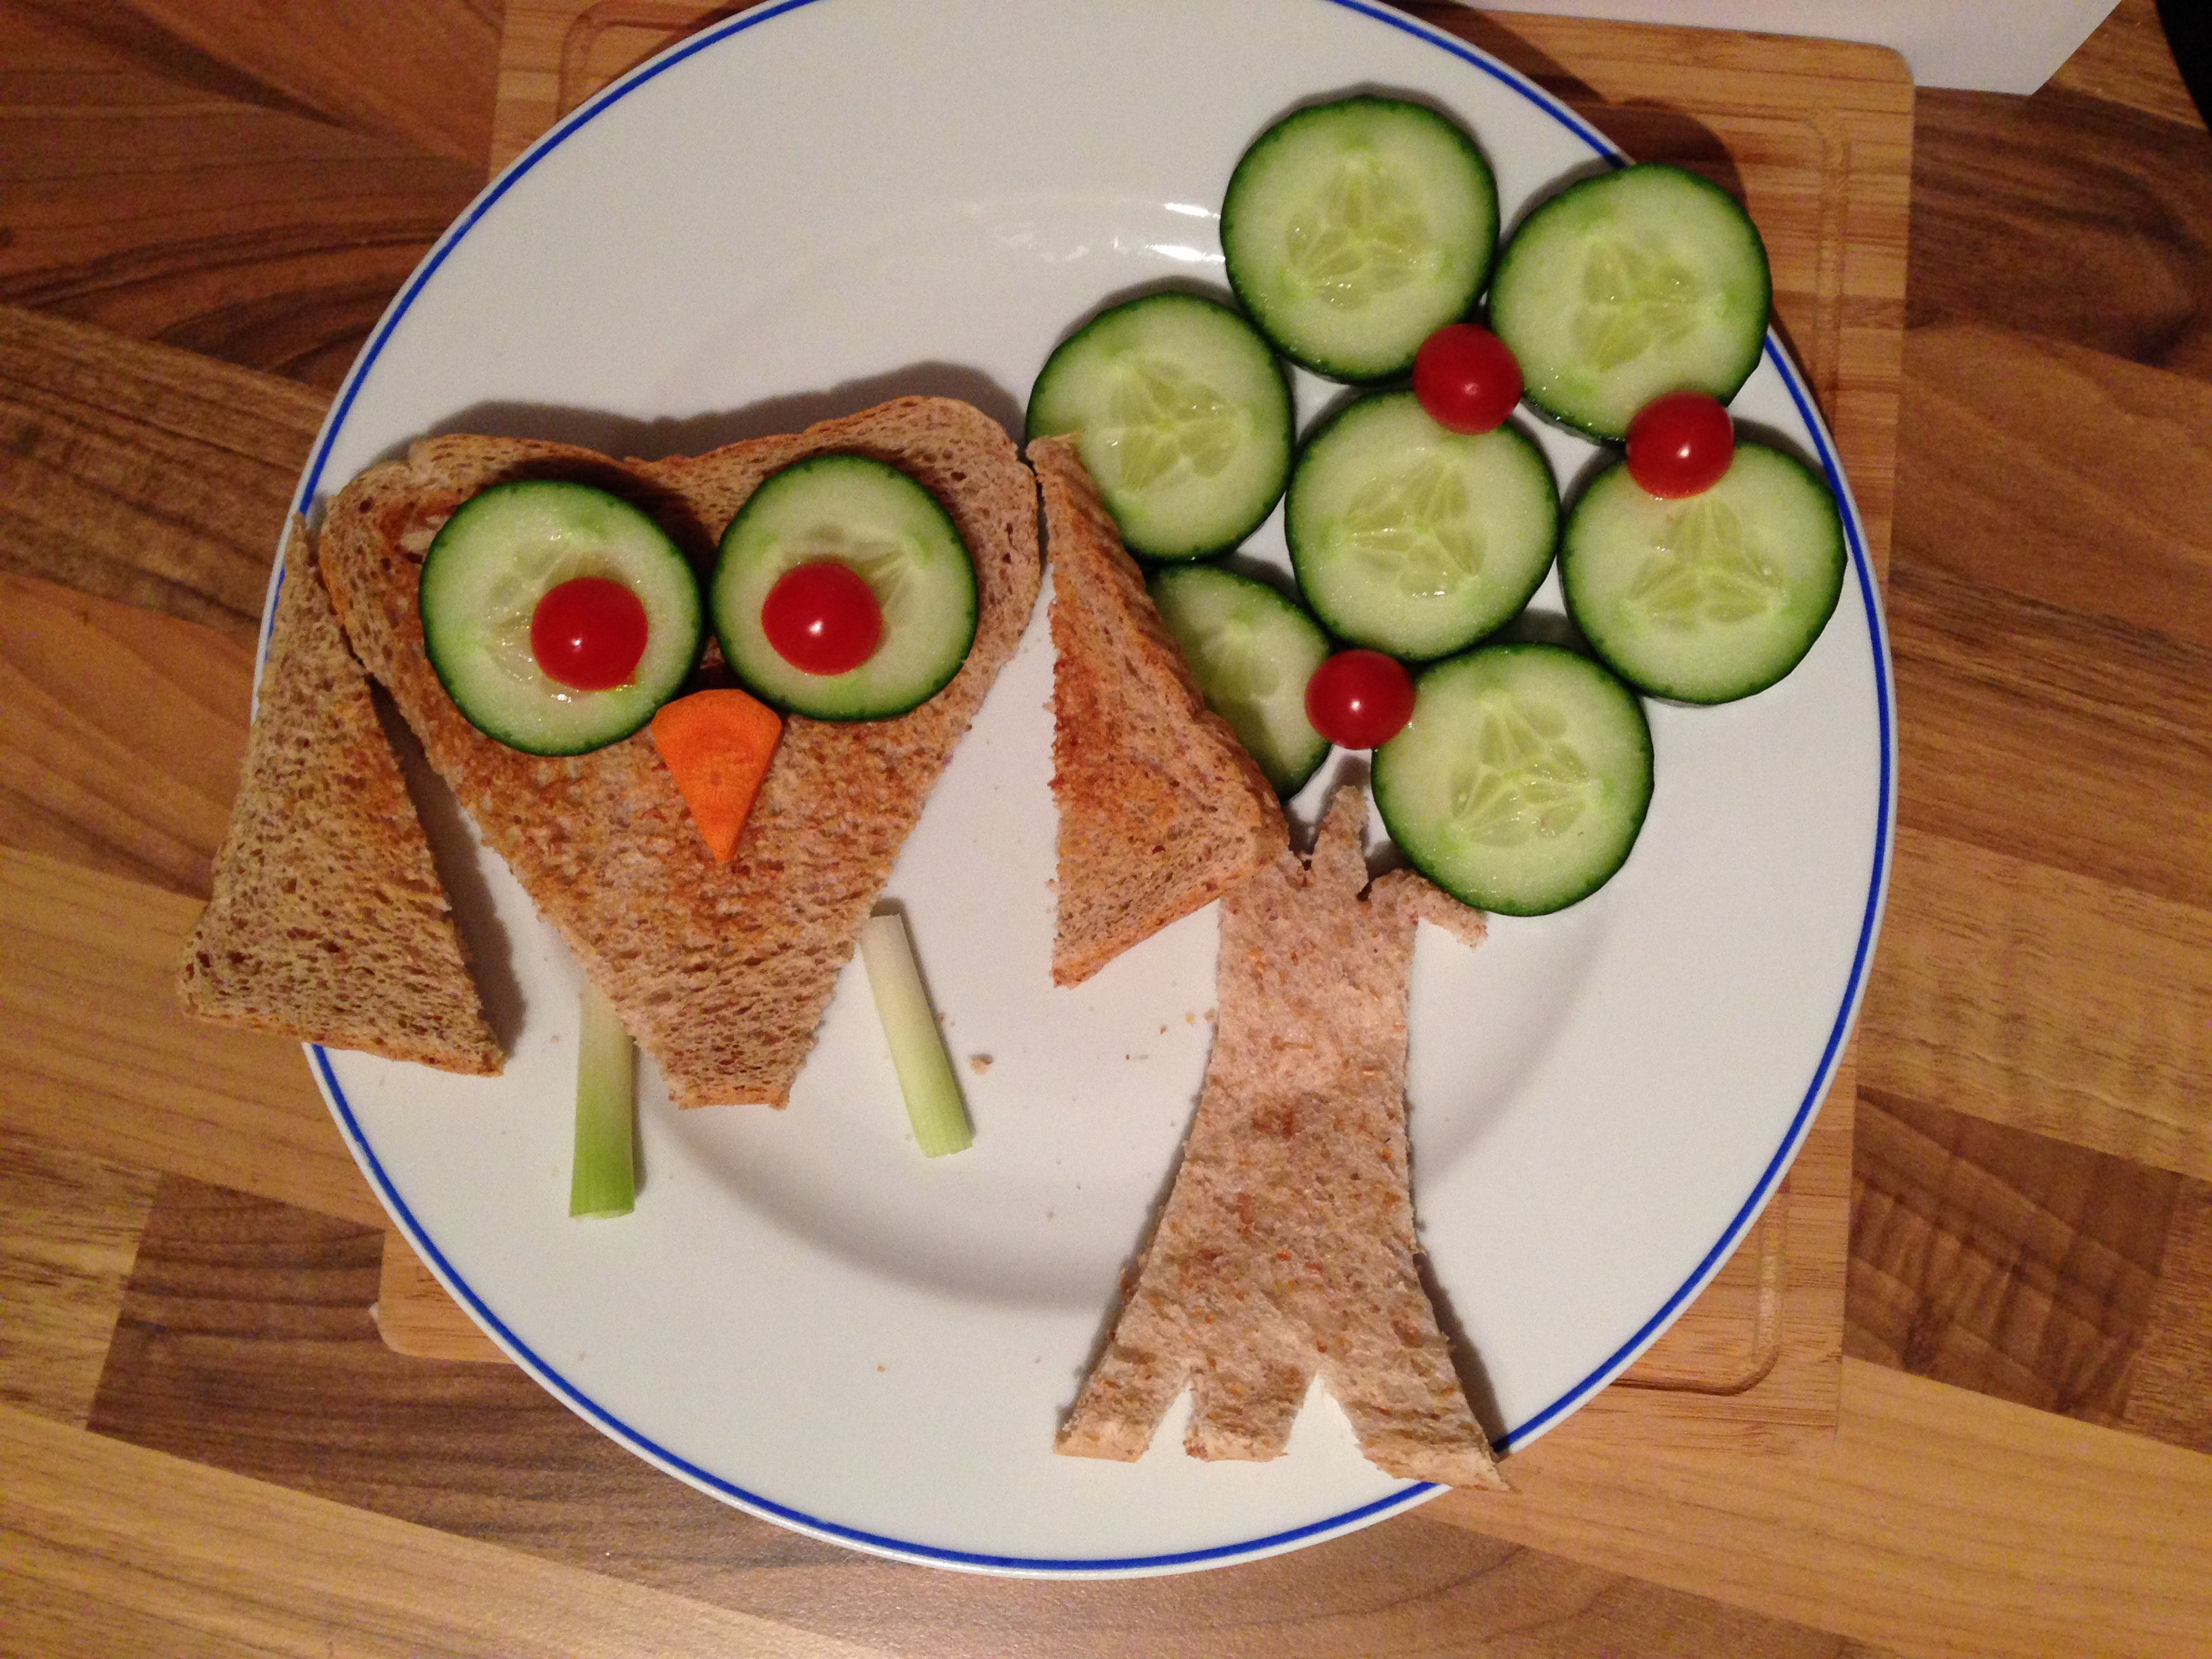 Simples ways to get kids eat vegetables